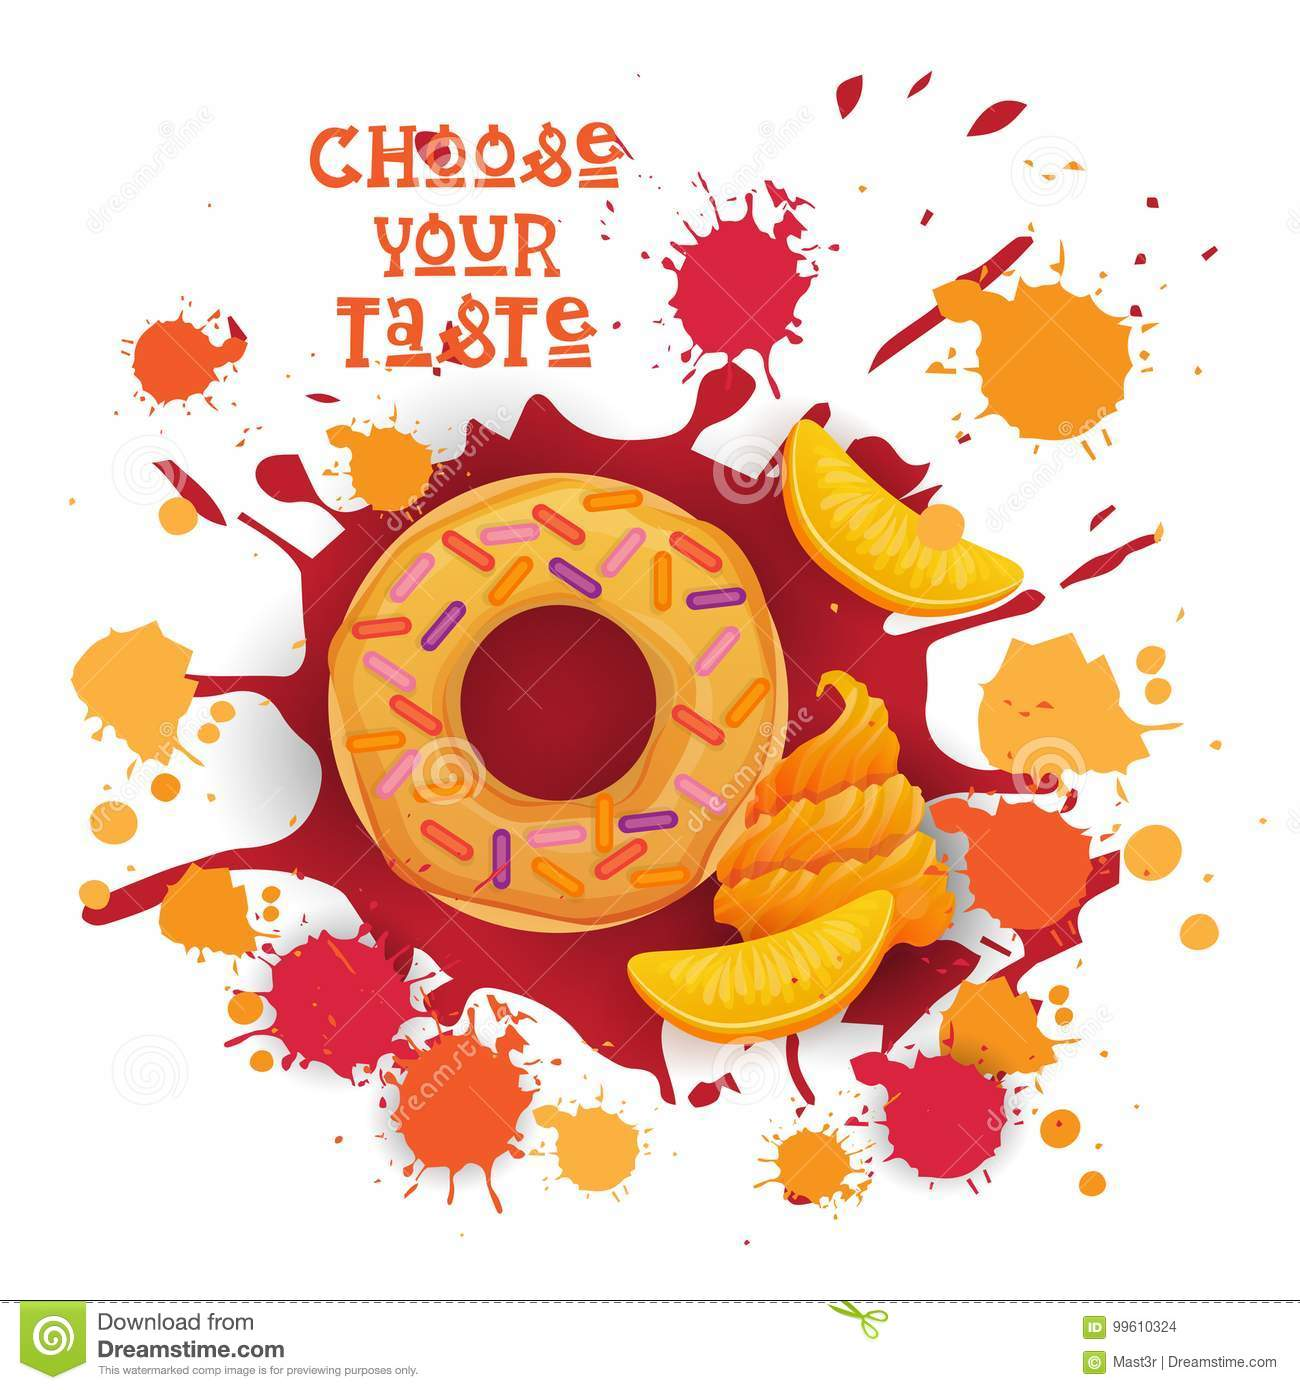 Donut Peach Colorful Dessert Icon Choose Your Taste Cafe Poster